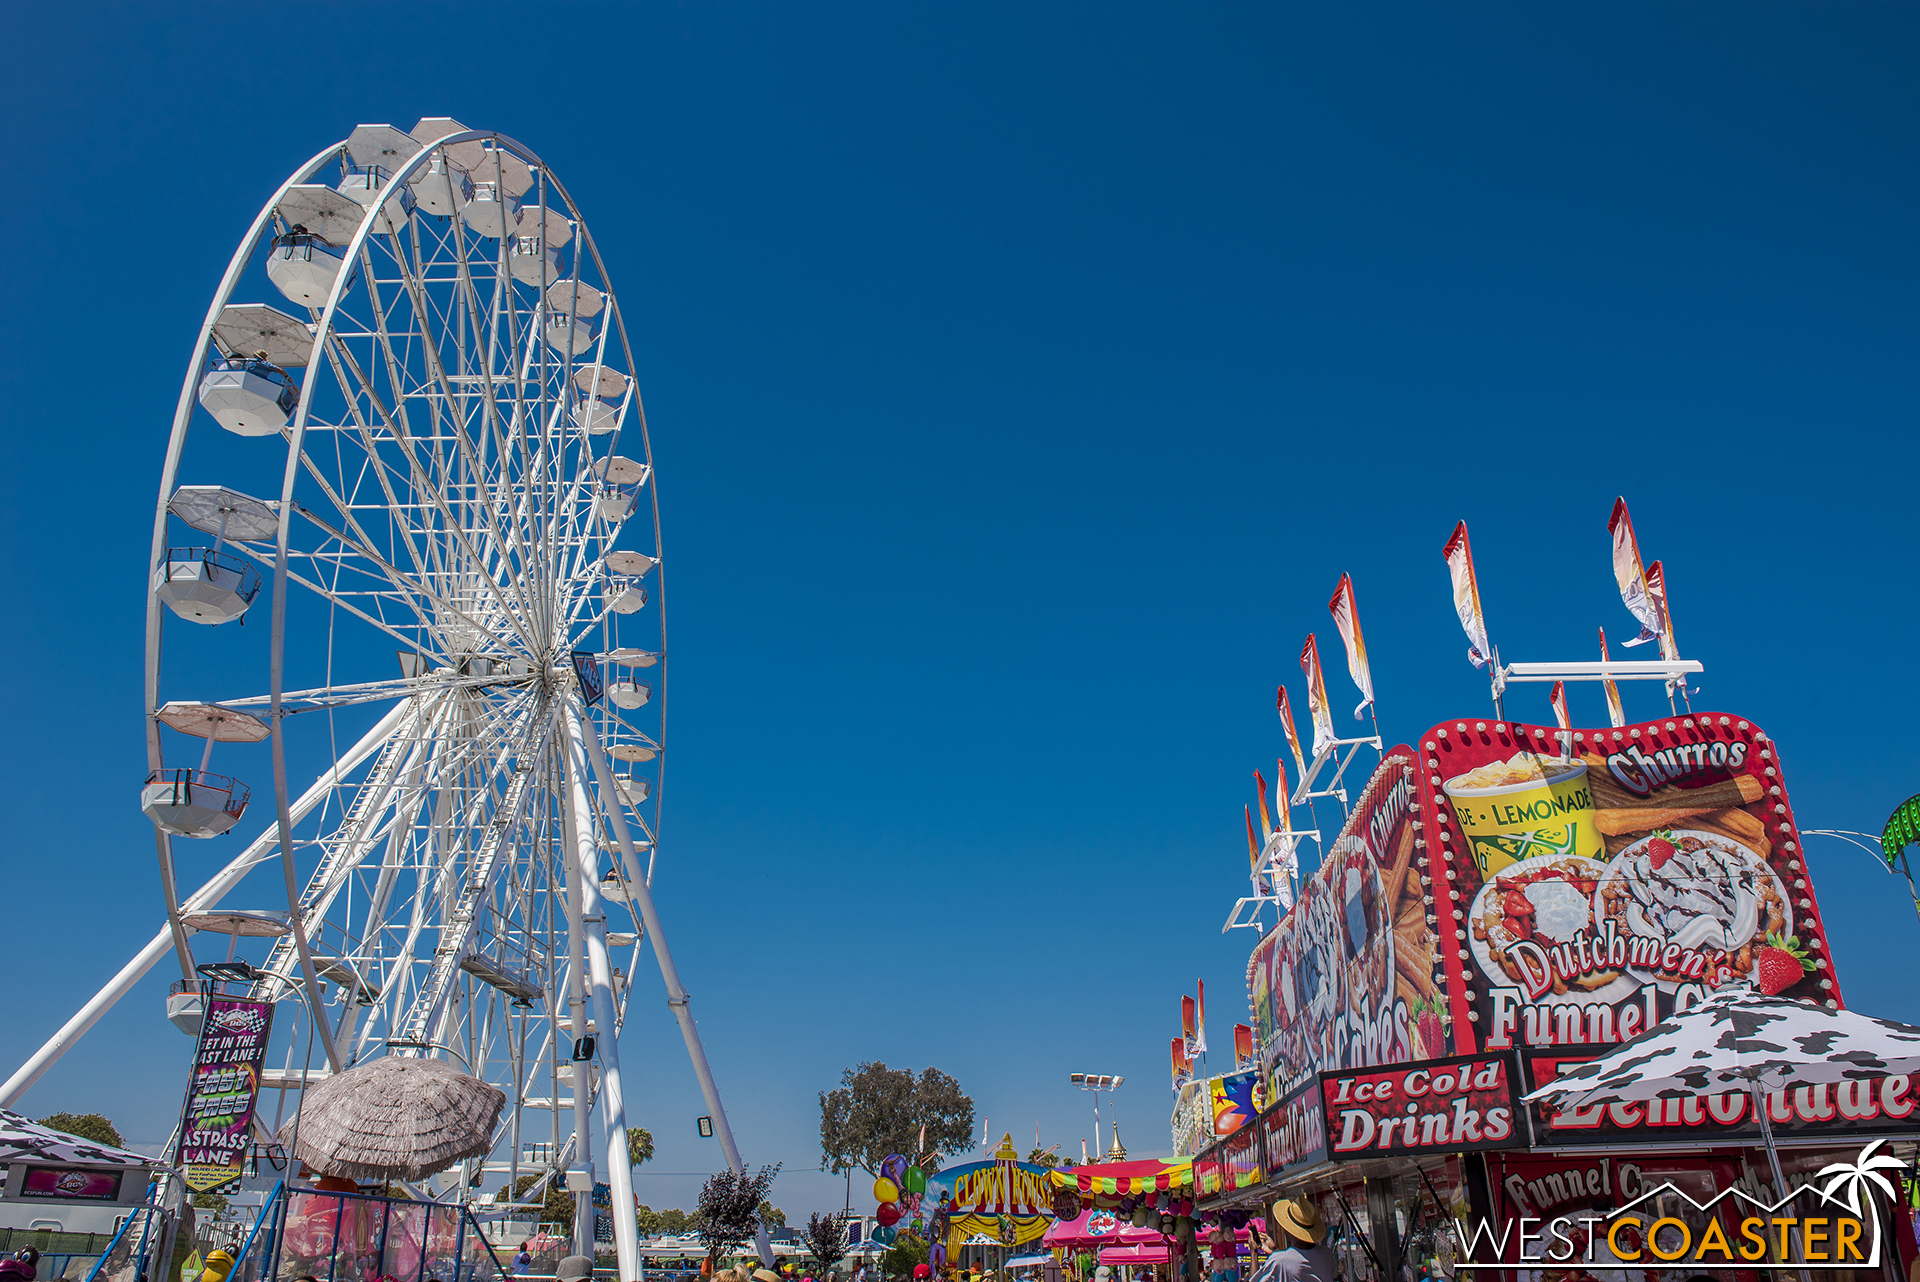 It ain't the fair without the rides.